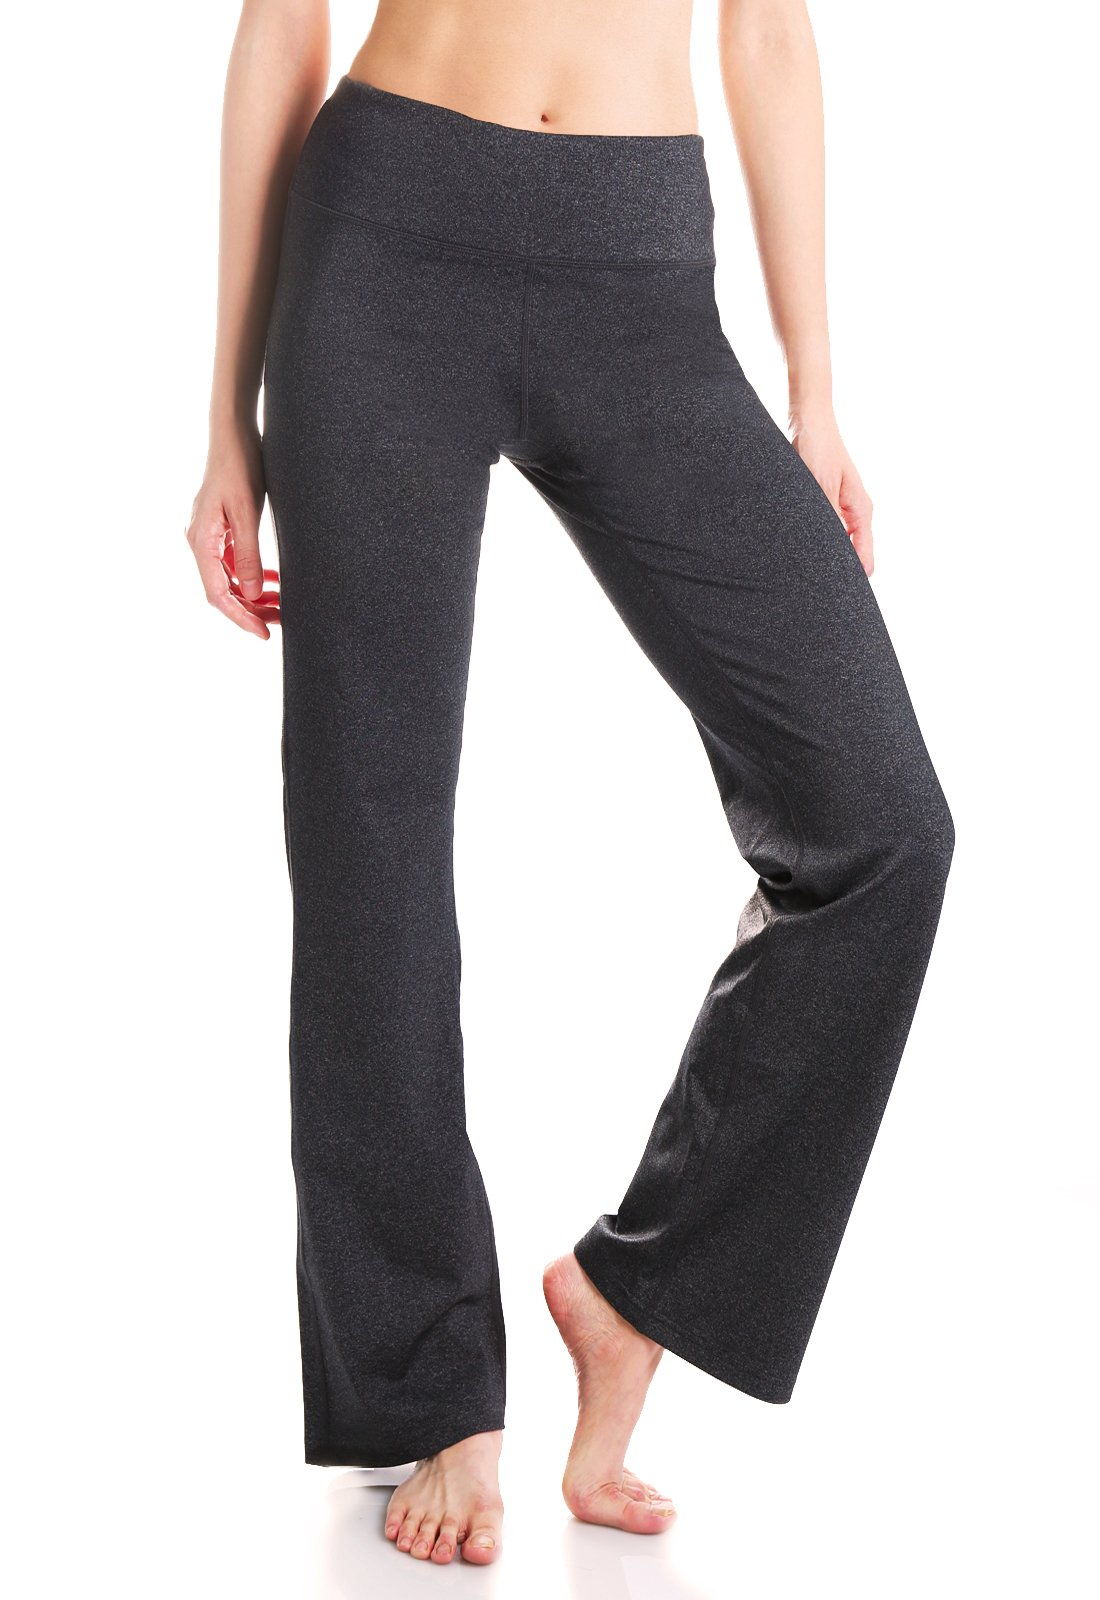 Yogipace,2 Back Pockets,29''/31''/33''/35''/37'' Inseam, Women's Bootcut Yoga Pants Workout Pants,Petite/Regular/Tall Length, 37'' Inseam, Size 2XL, Charcoal